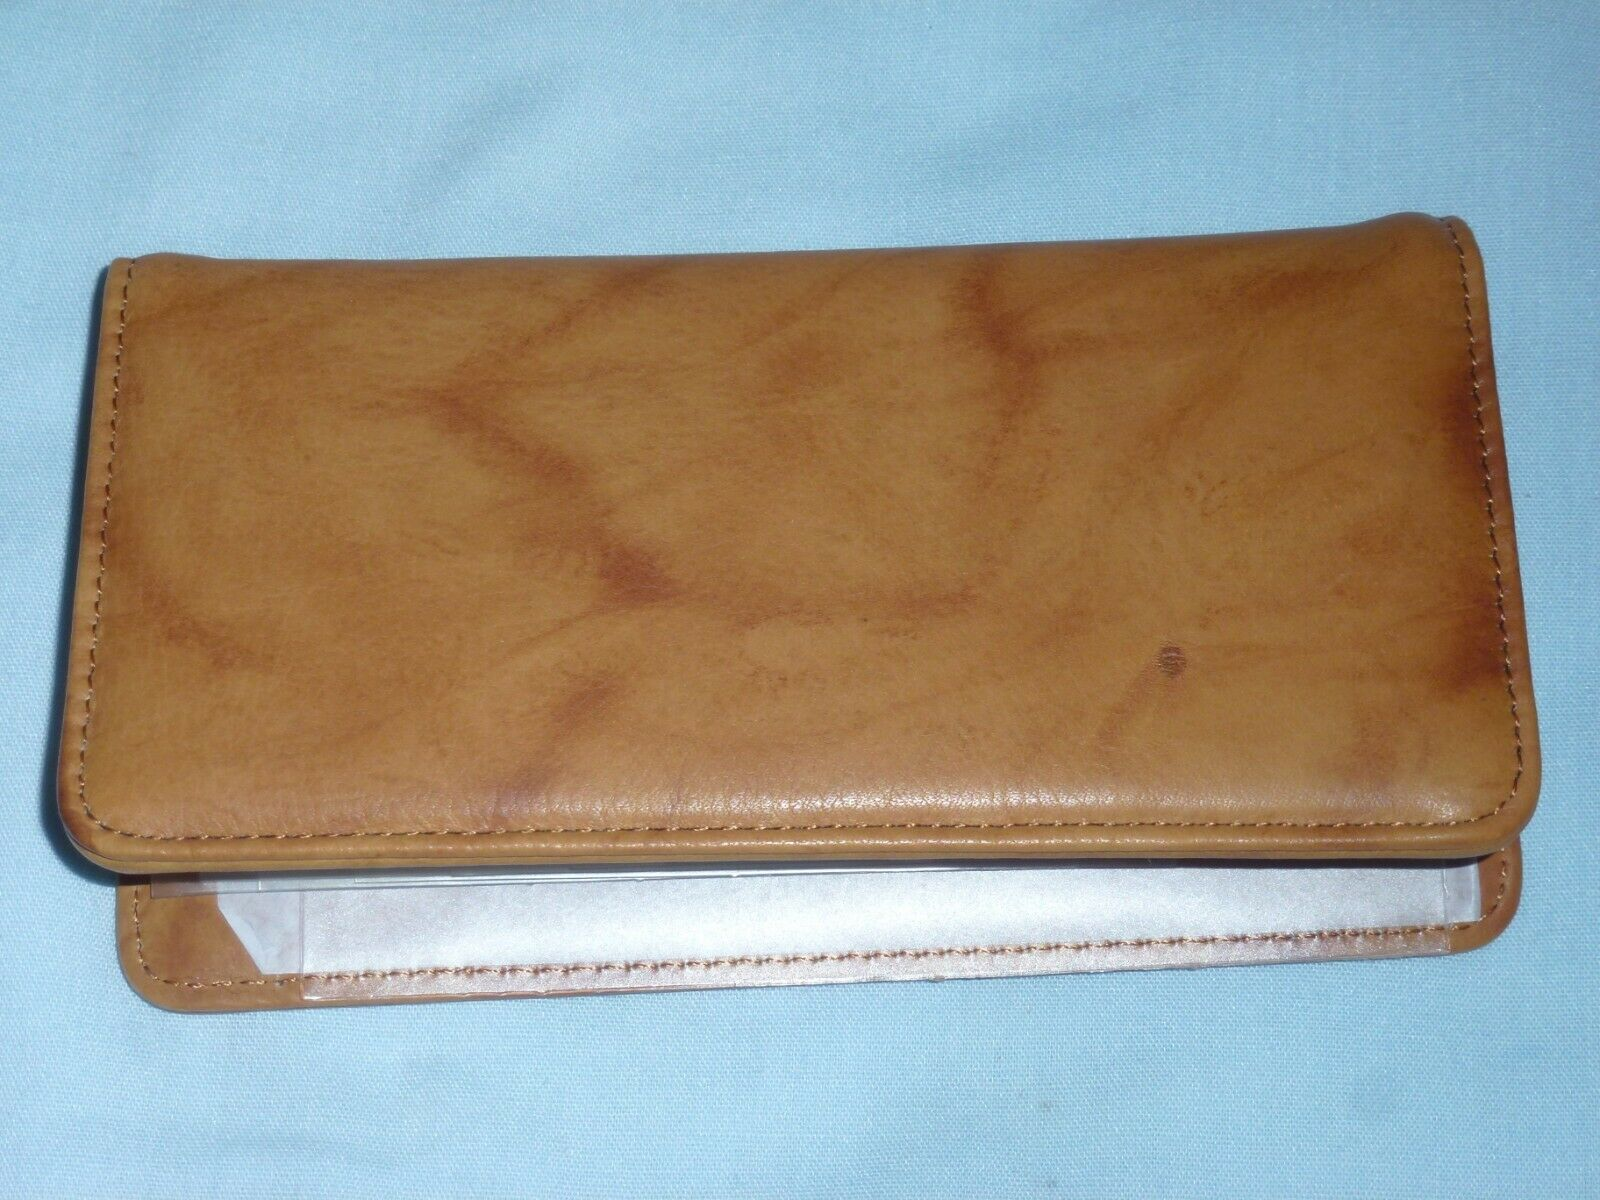 Genuine Leather Checkbook by RICO very soft leather NEW brown+